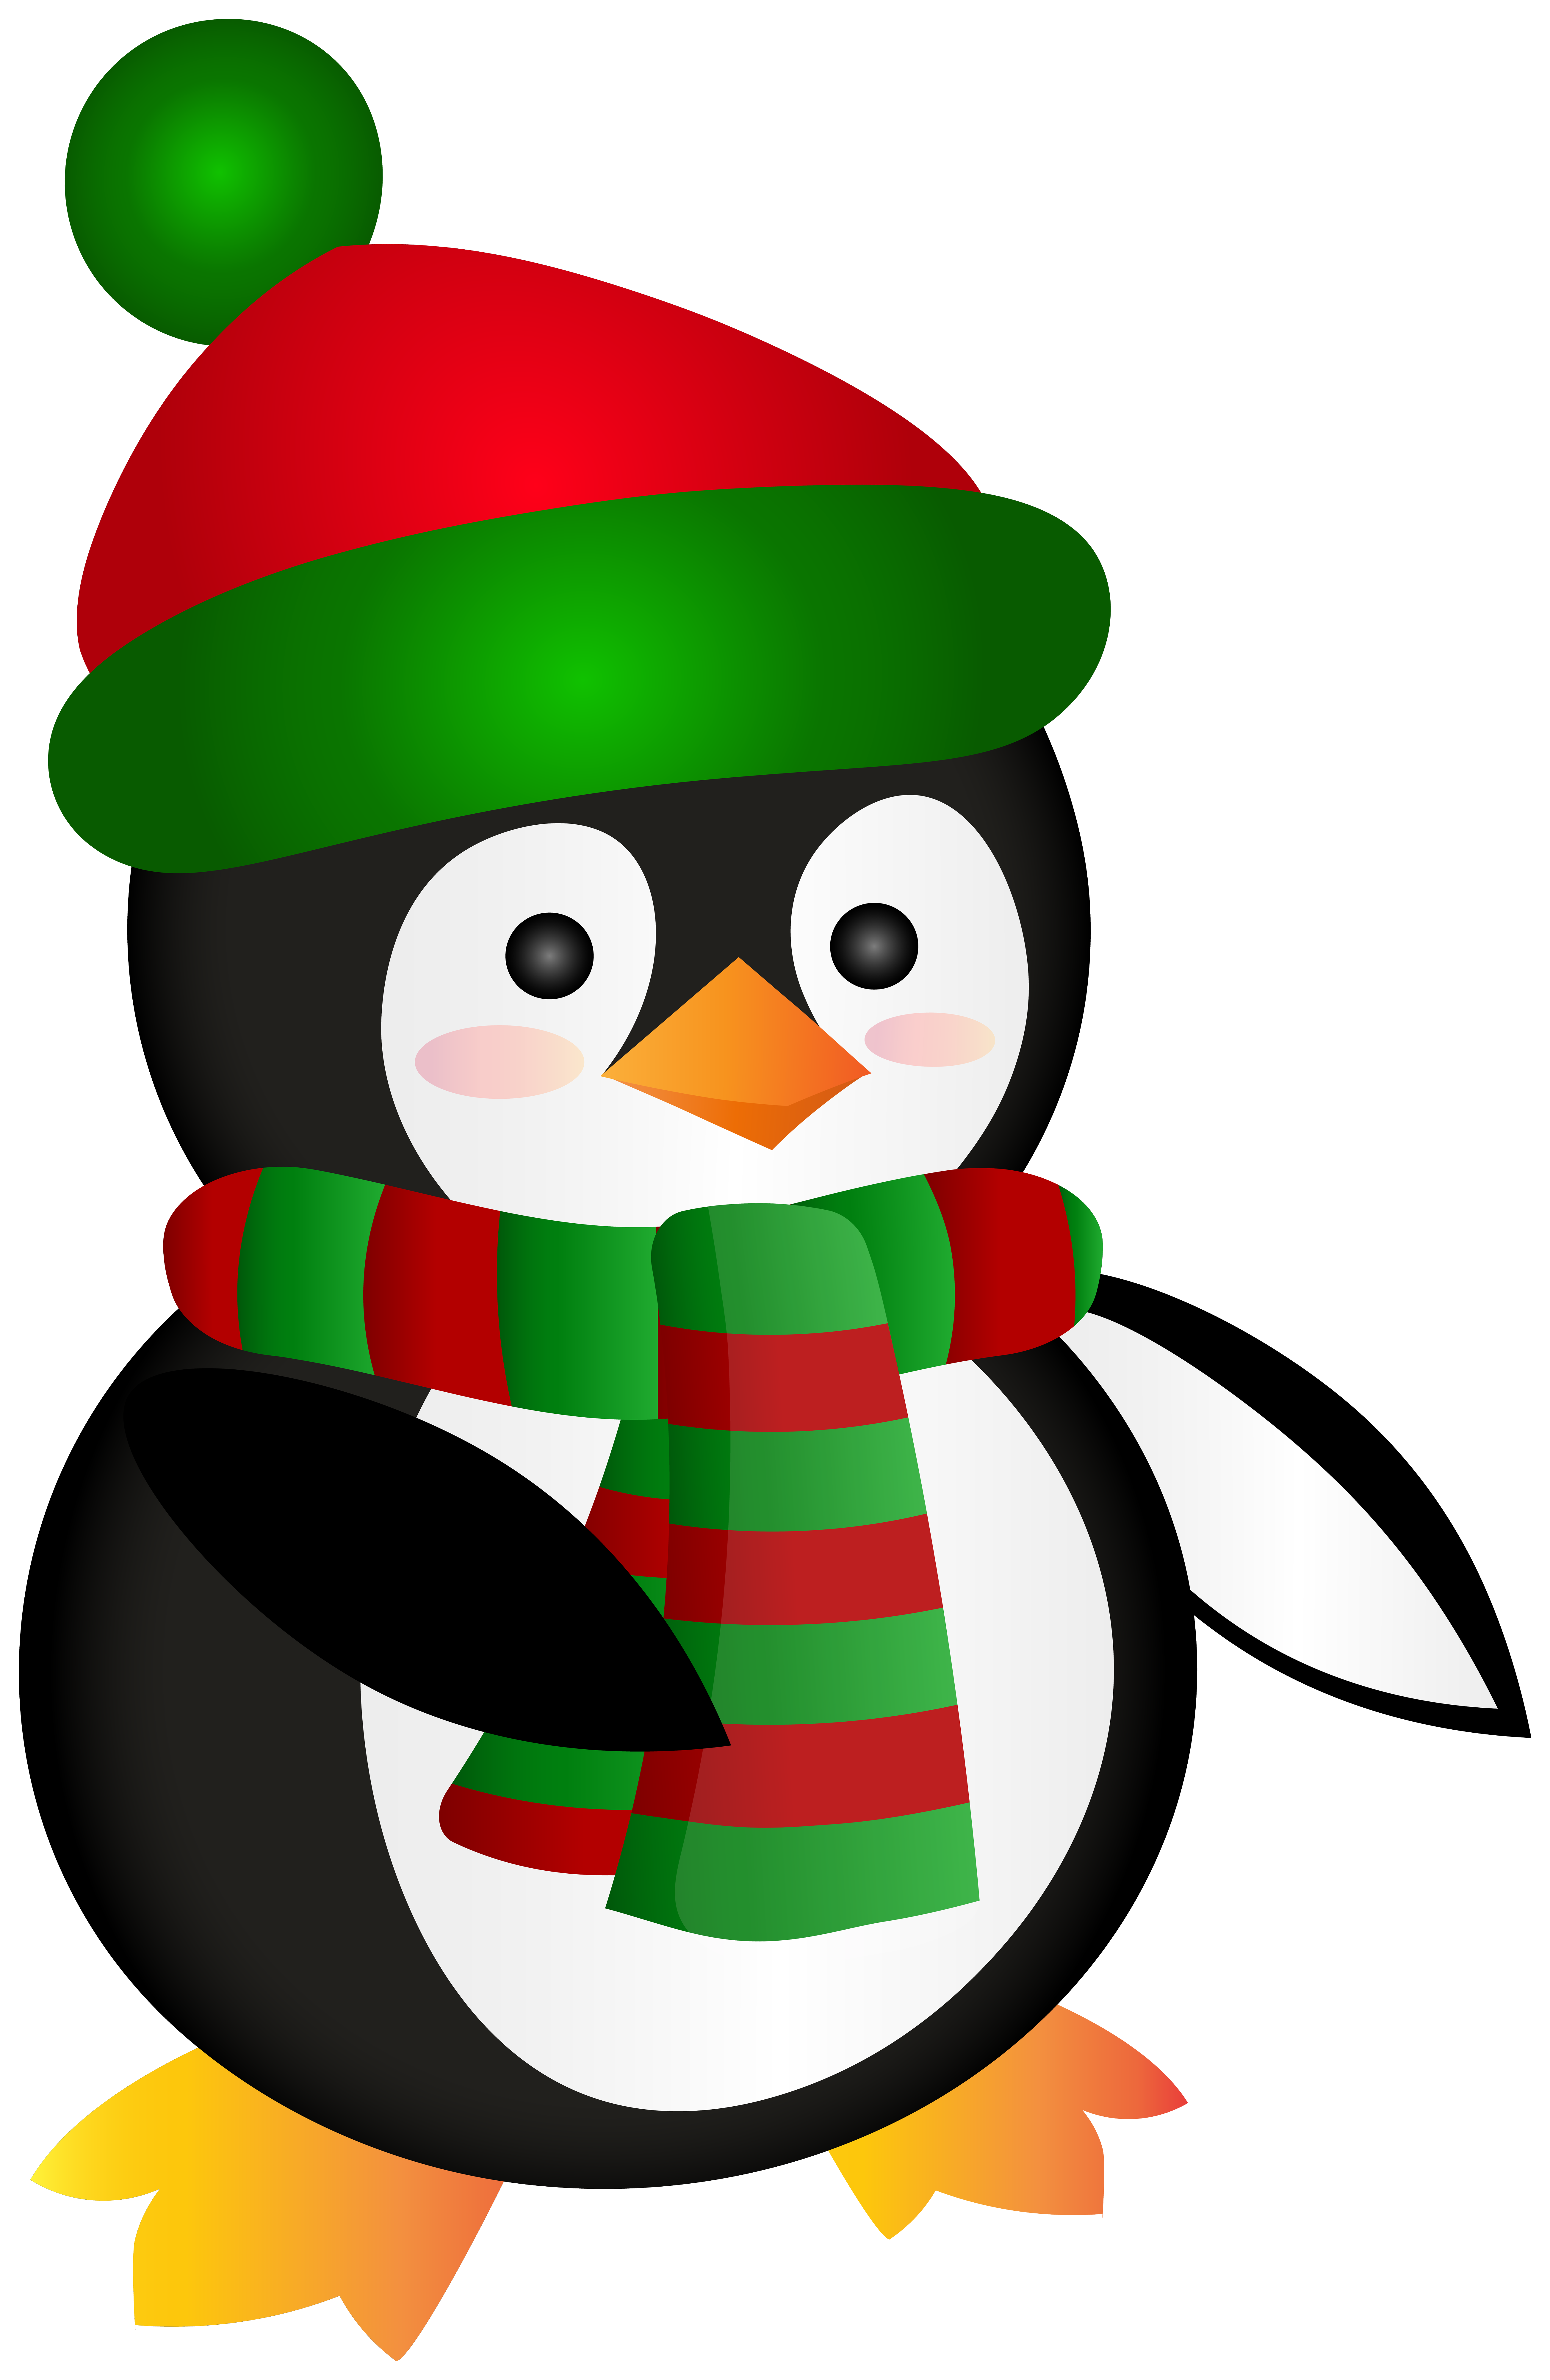 Christmas penguin images clipart png black and white Cute Christmas Penguin Clip Art Image | Gallery Yopriceville - High ... png black and white